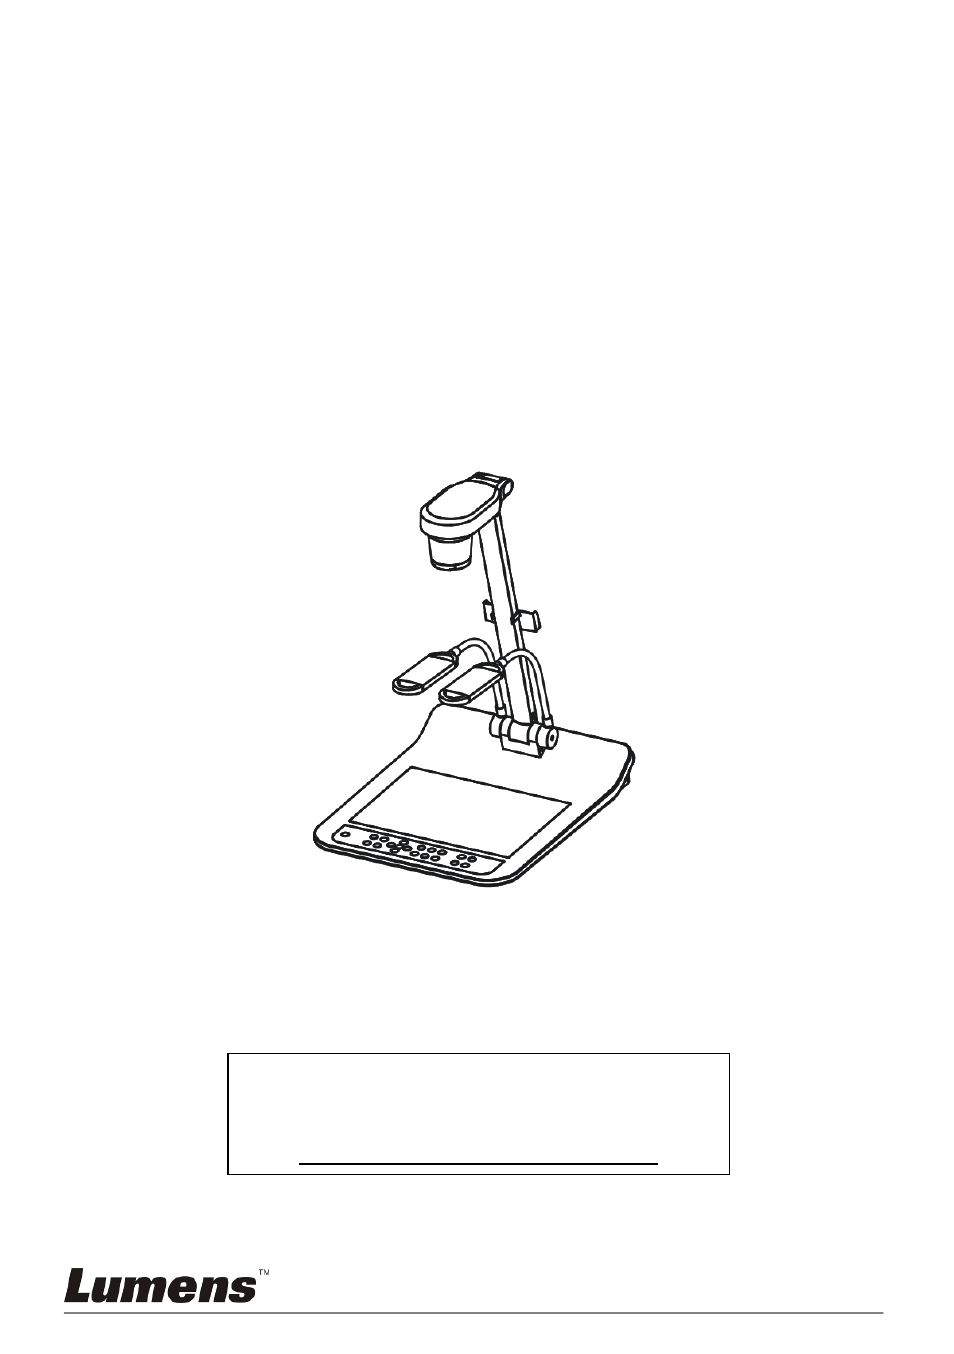 Lumens Technology PS750 User Manual | 45 pages